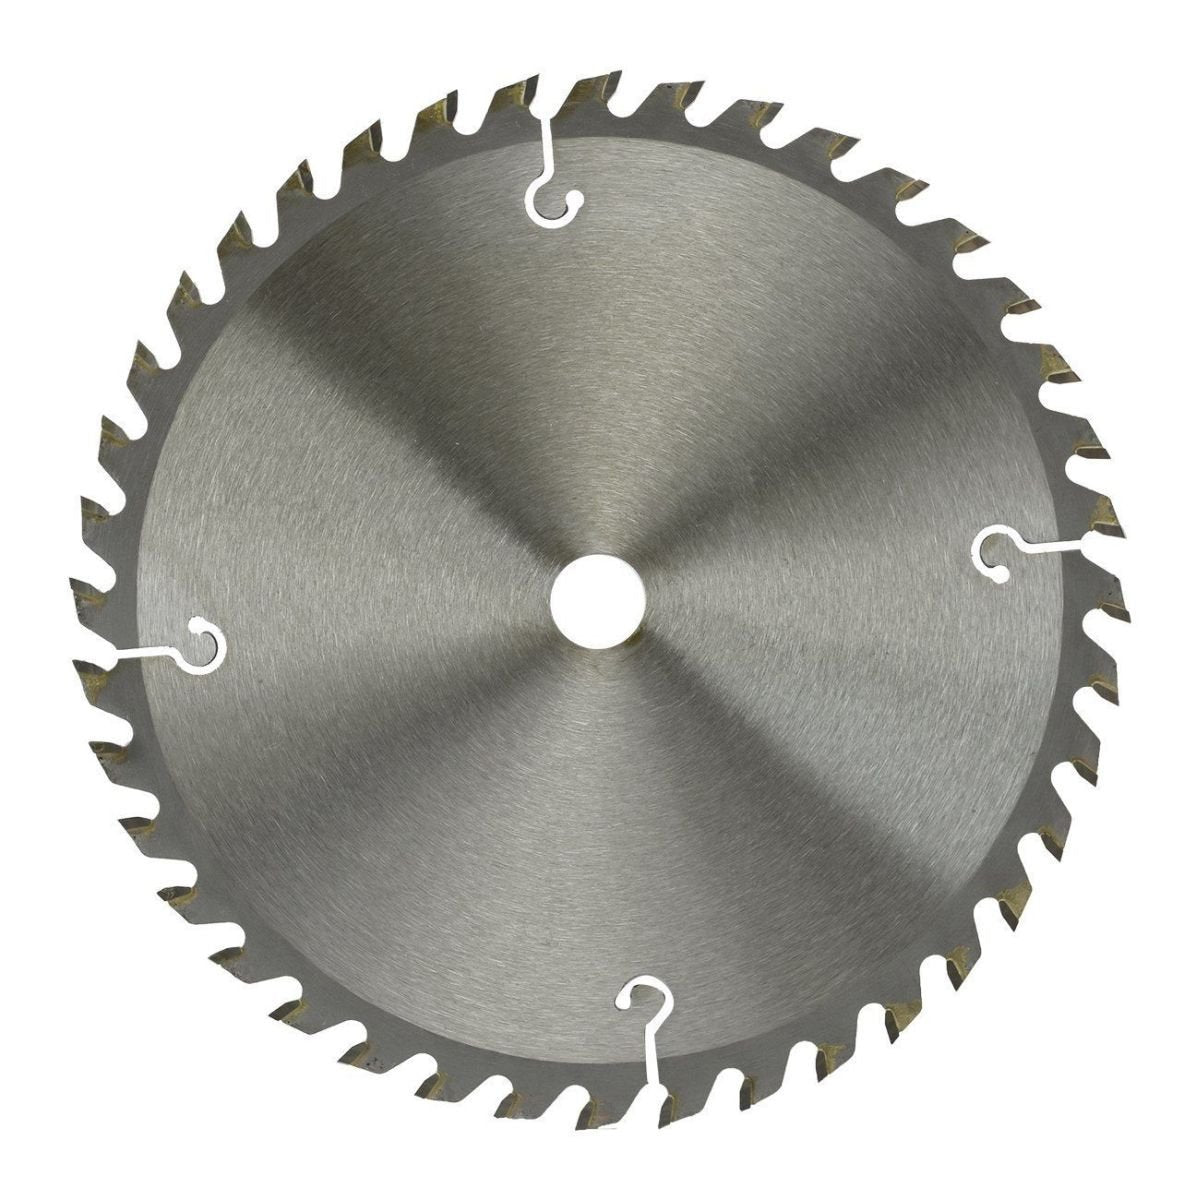 "NEW 7-1/4"" 40 TOOTH CARBIDE TIPPED CIRCULAR SAW BLADE"